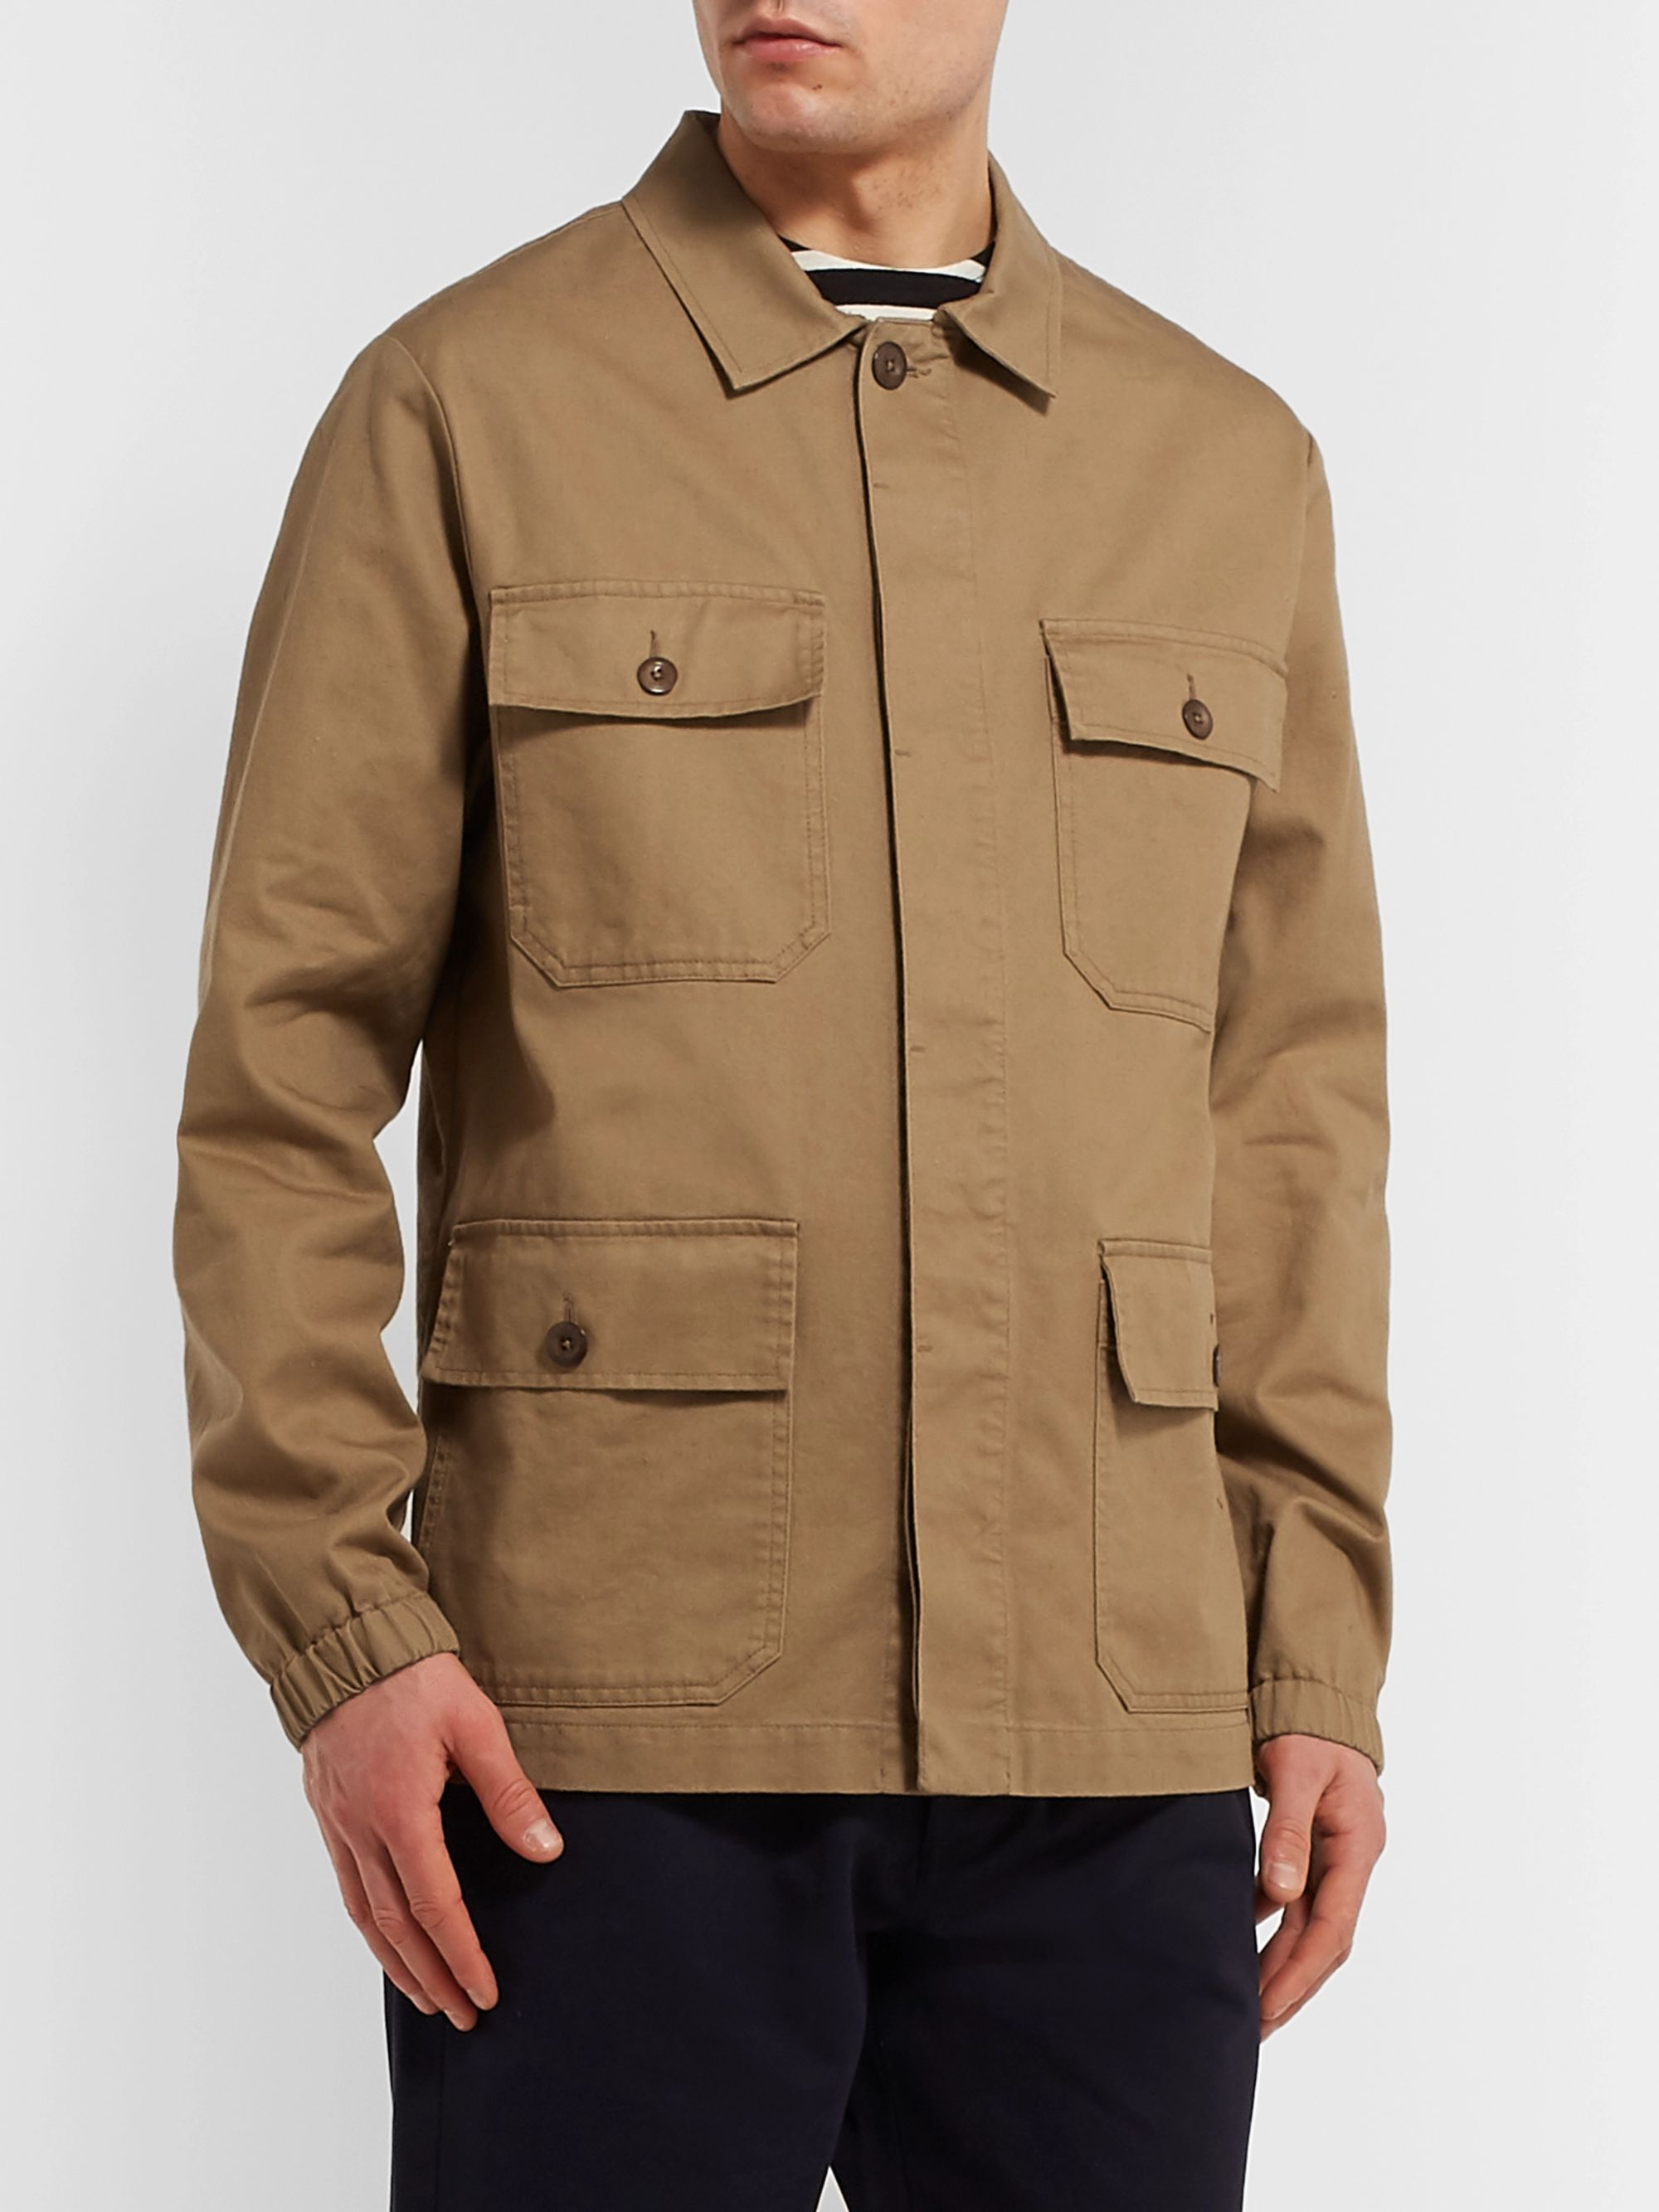 Margaret Howell MHL Engineers Cotton and Linen-Blend Twill Field Jacket